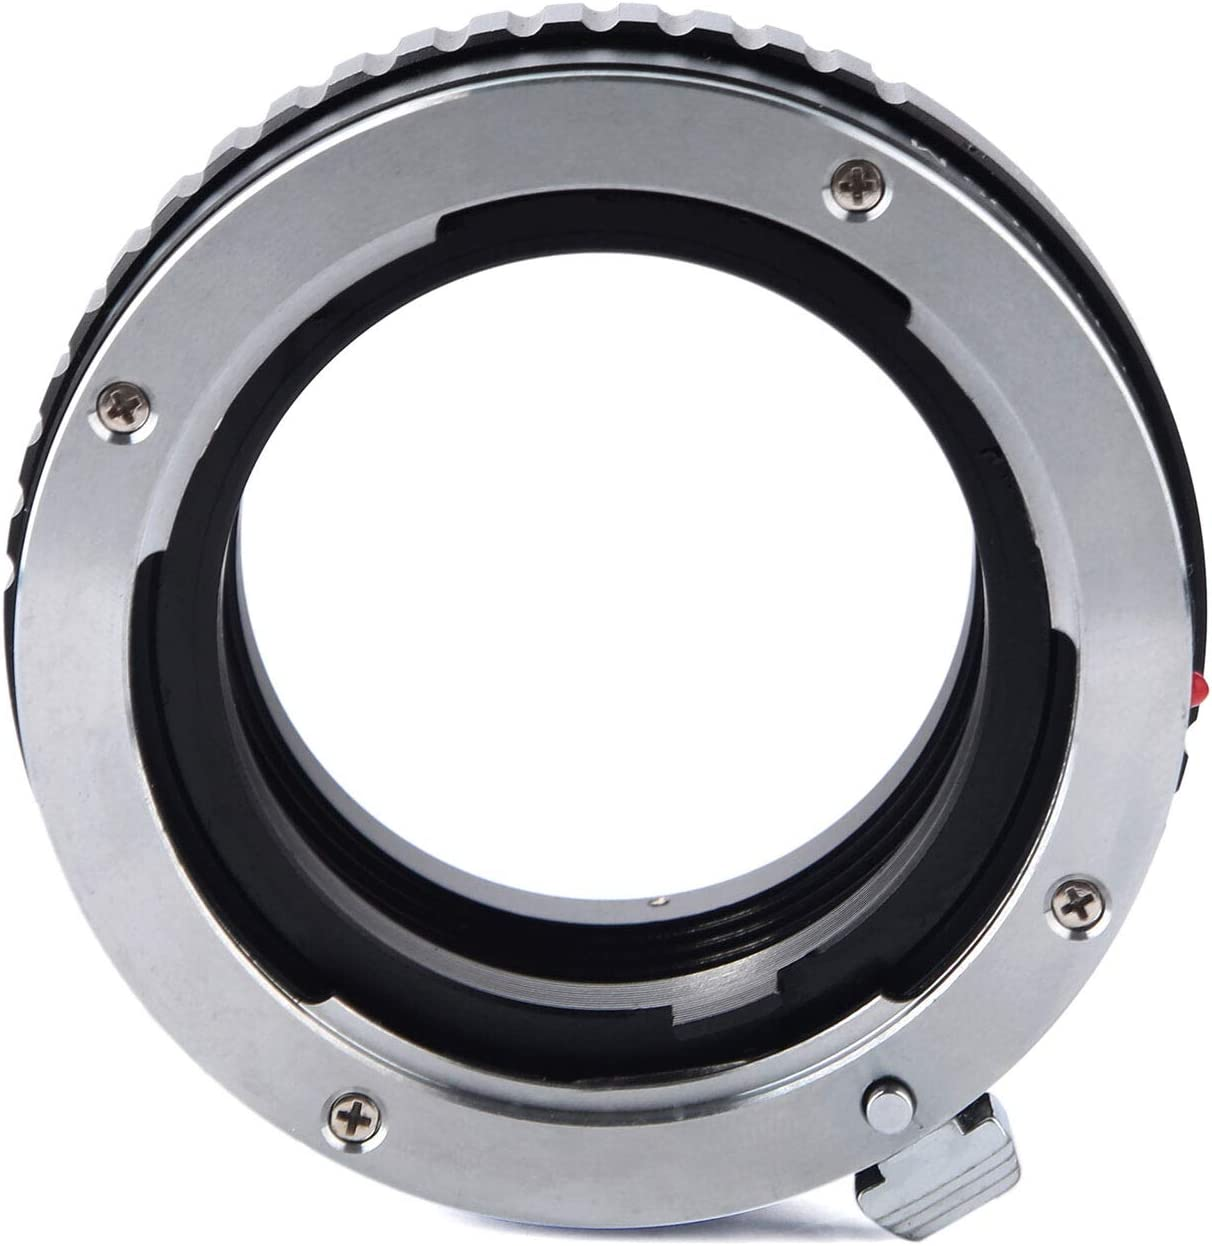 K/&F Concept Adapter for Nikon F Mount Lens to Canon EOS M1 M2 M3 Camera